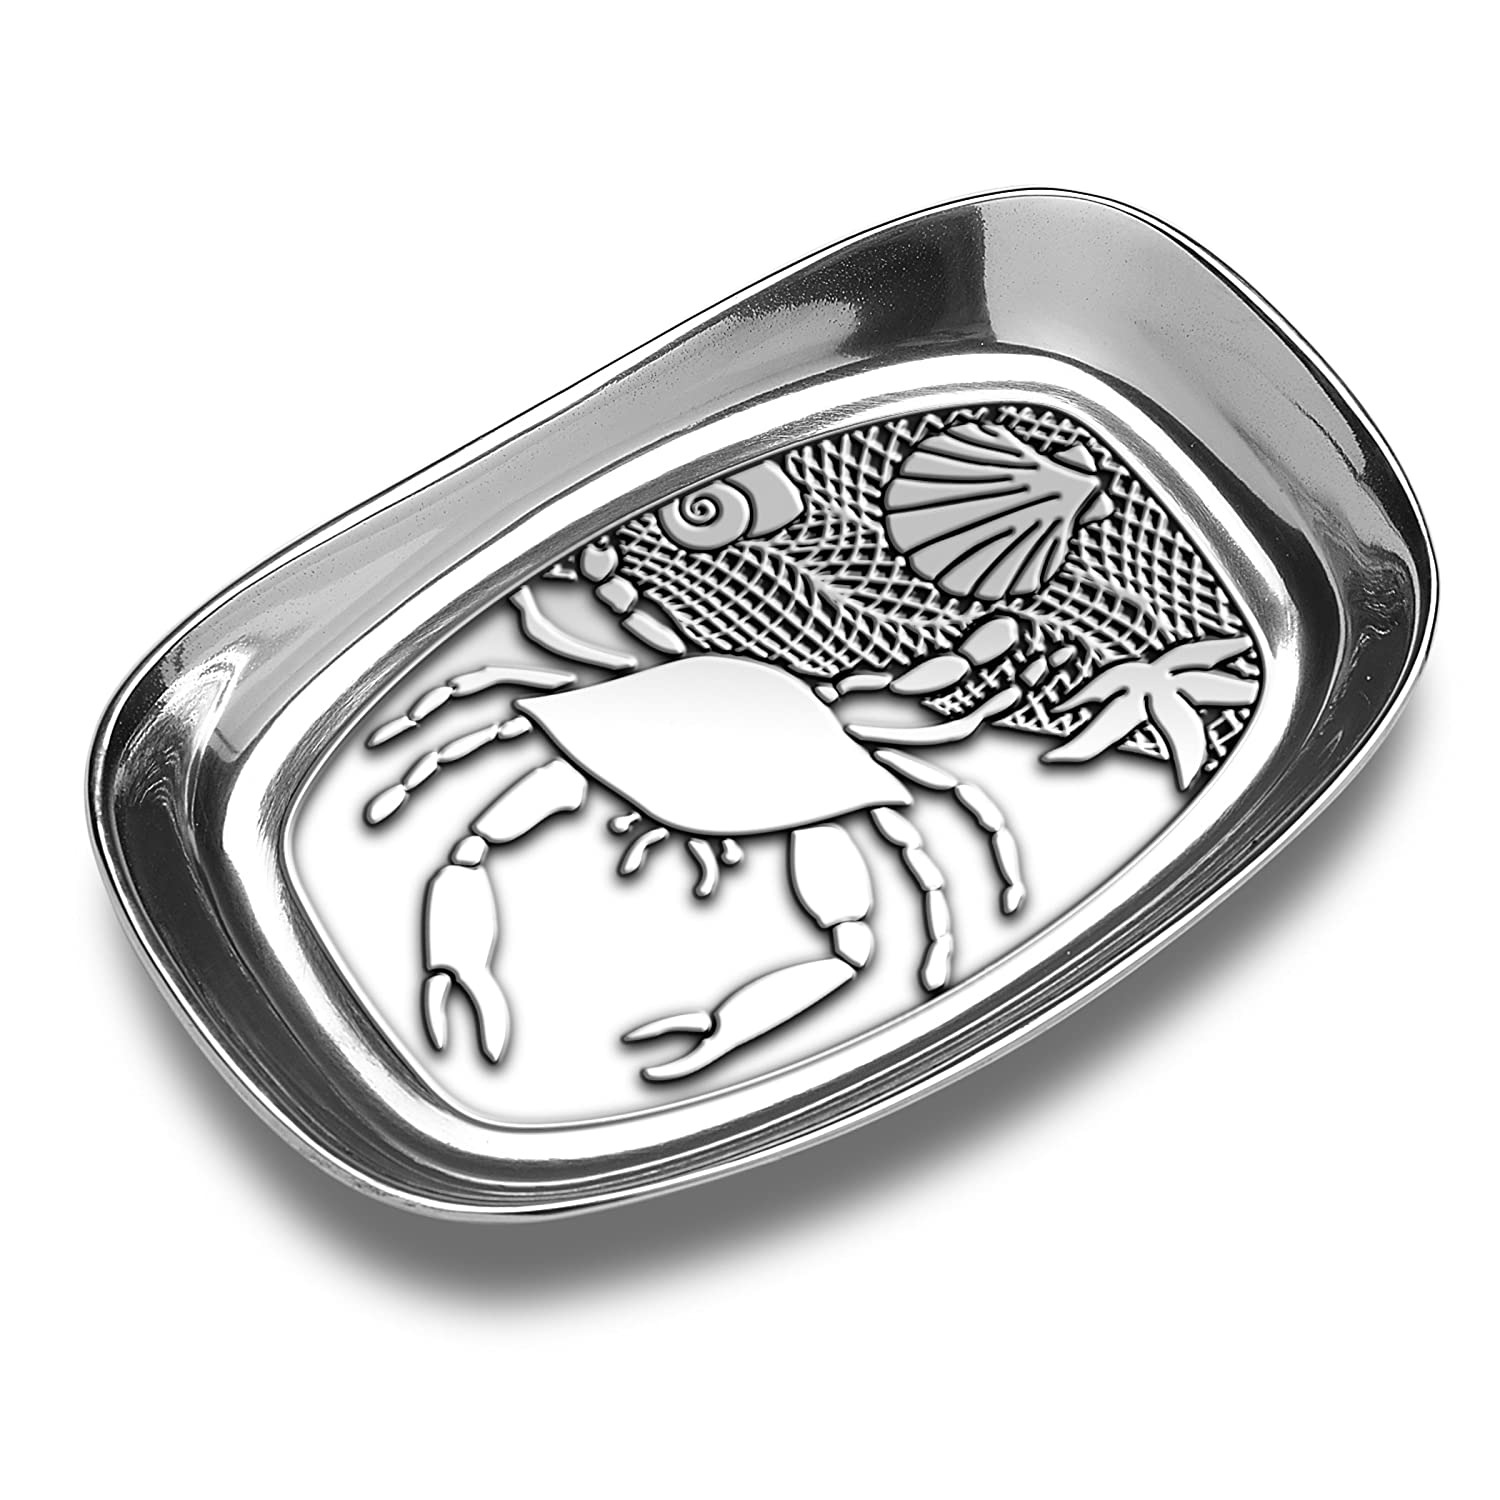 Coastal Christmas Tablescape Décor - Crab and seashell silver aluminum alloy bread serving tray by Designer Wilton Armetale